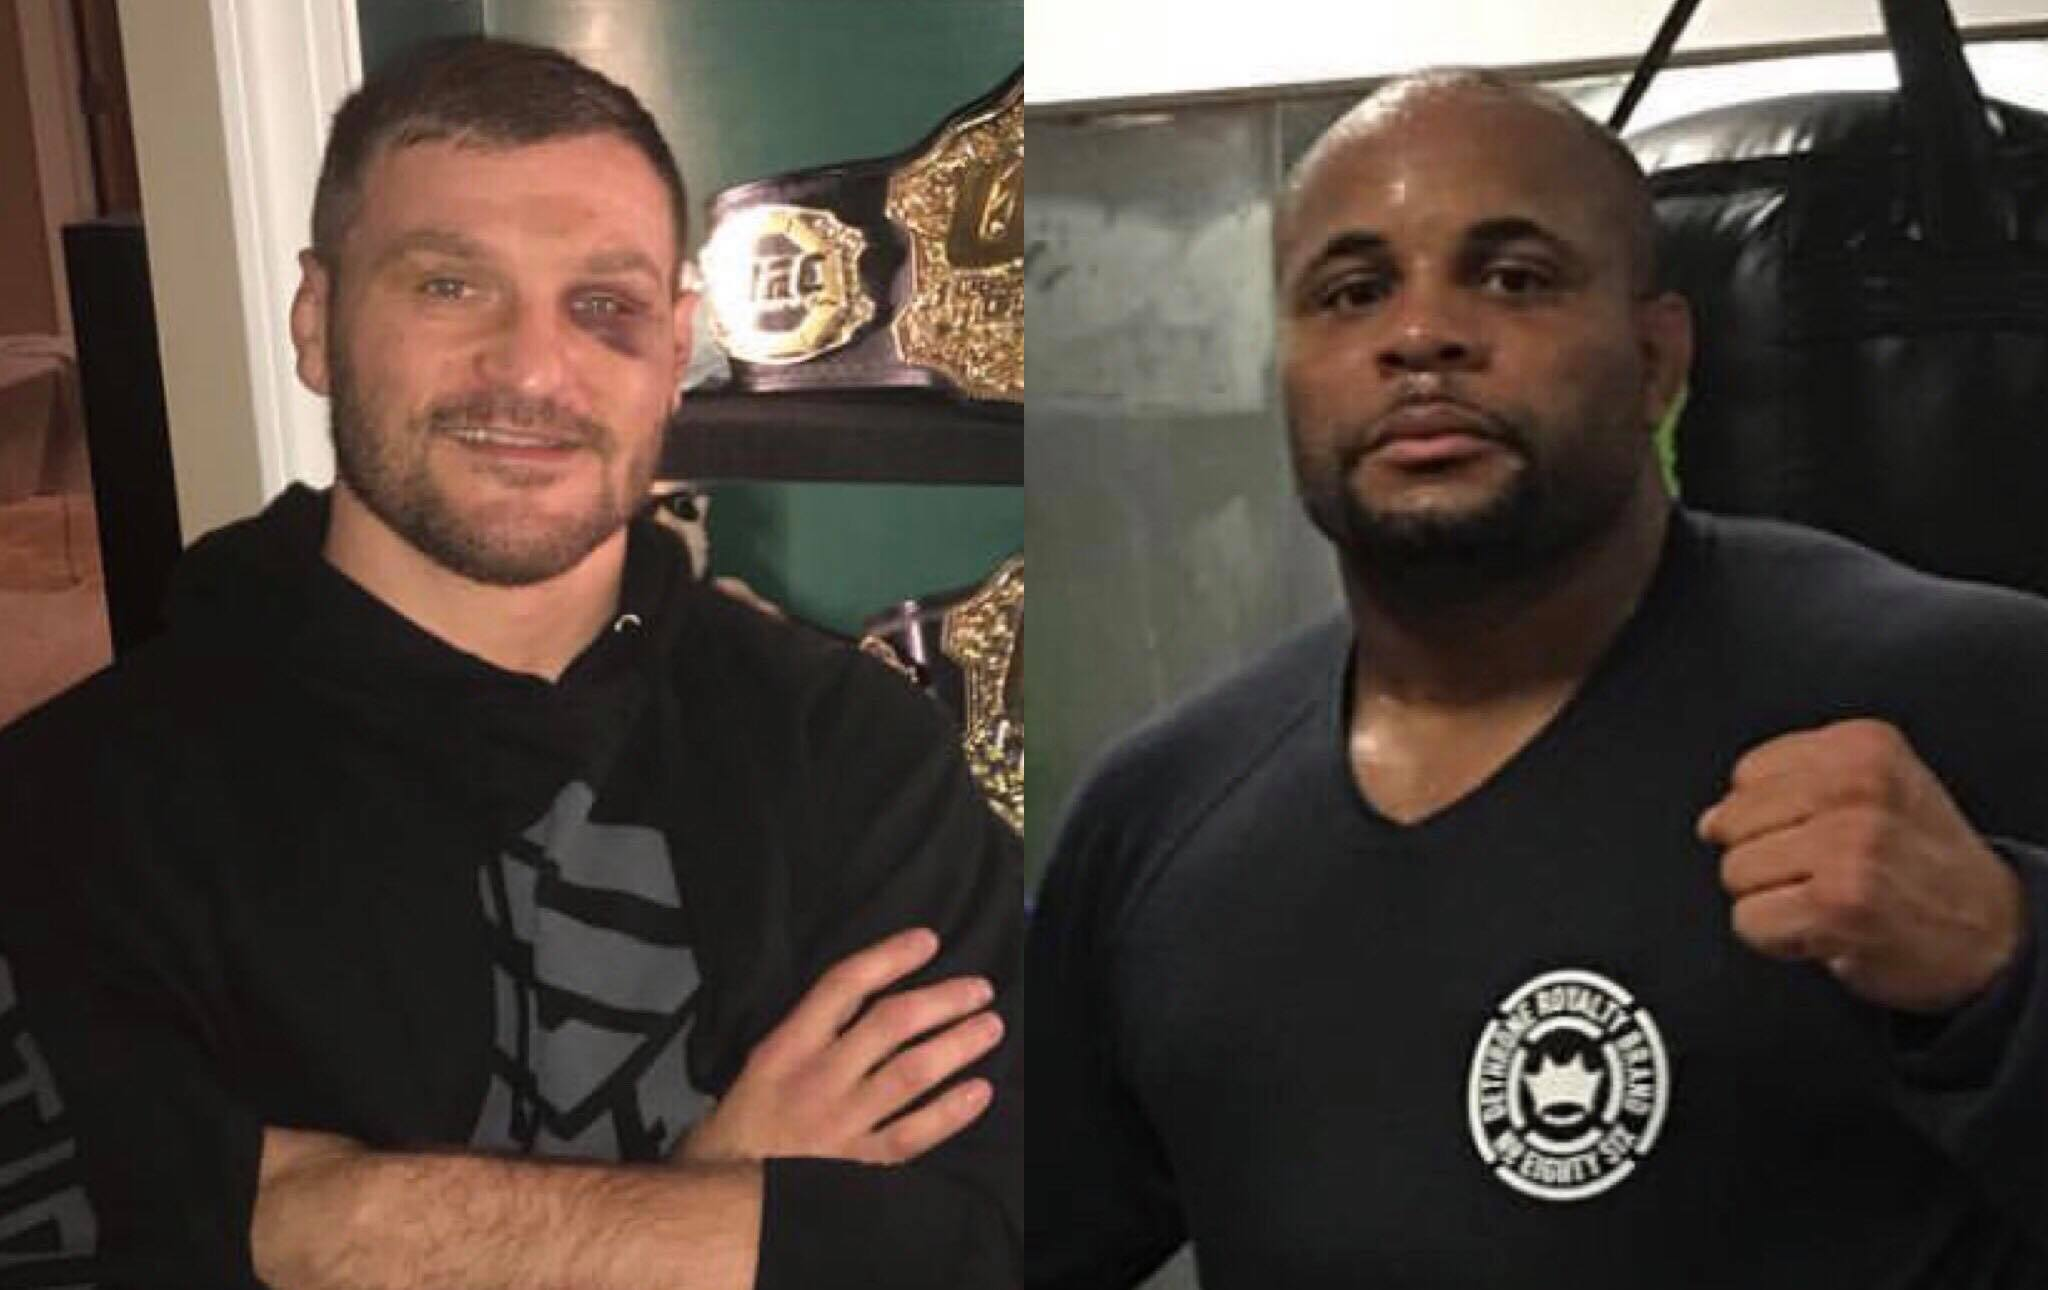 Stipe Miocic vs. Daniel Cormier Fight Announced for UFC 226